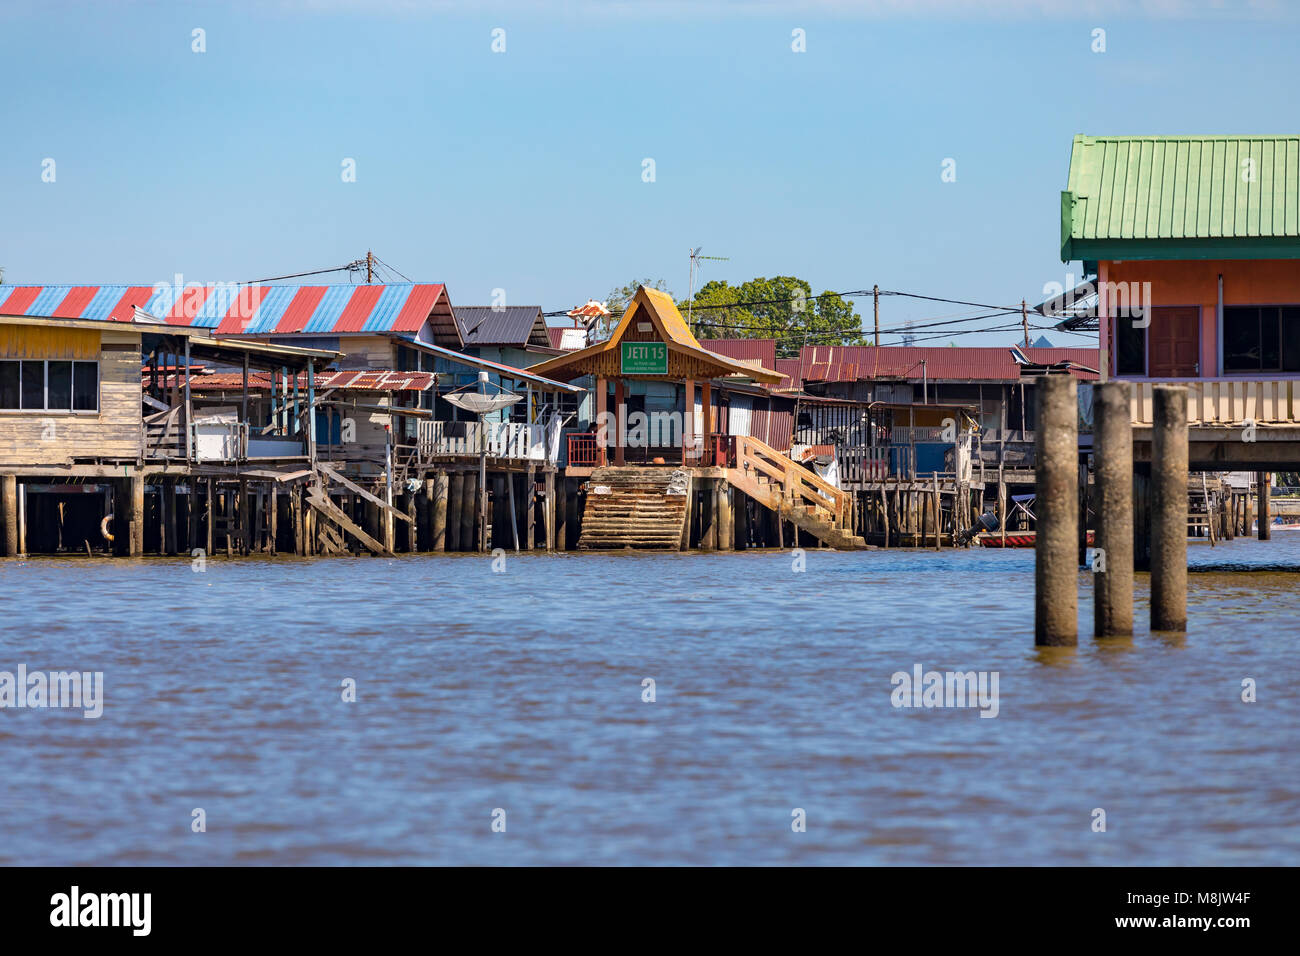 Brunei Darussalam Bandar Seri  March 17, 2018 BegawanWater taxis on the Brunei river, in and around Kampong Ayer, - Stock Image